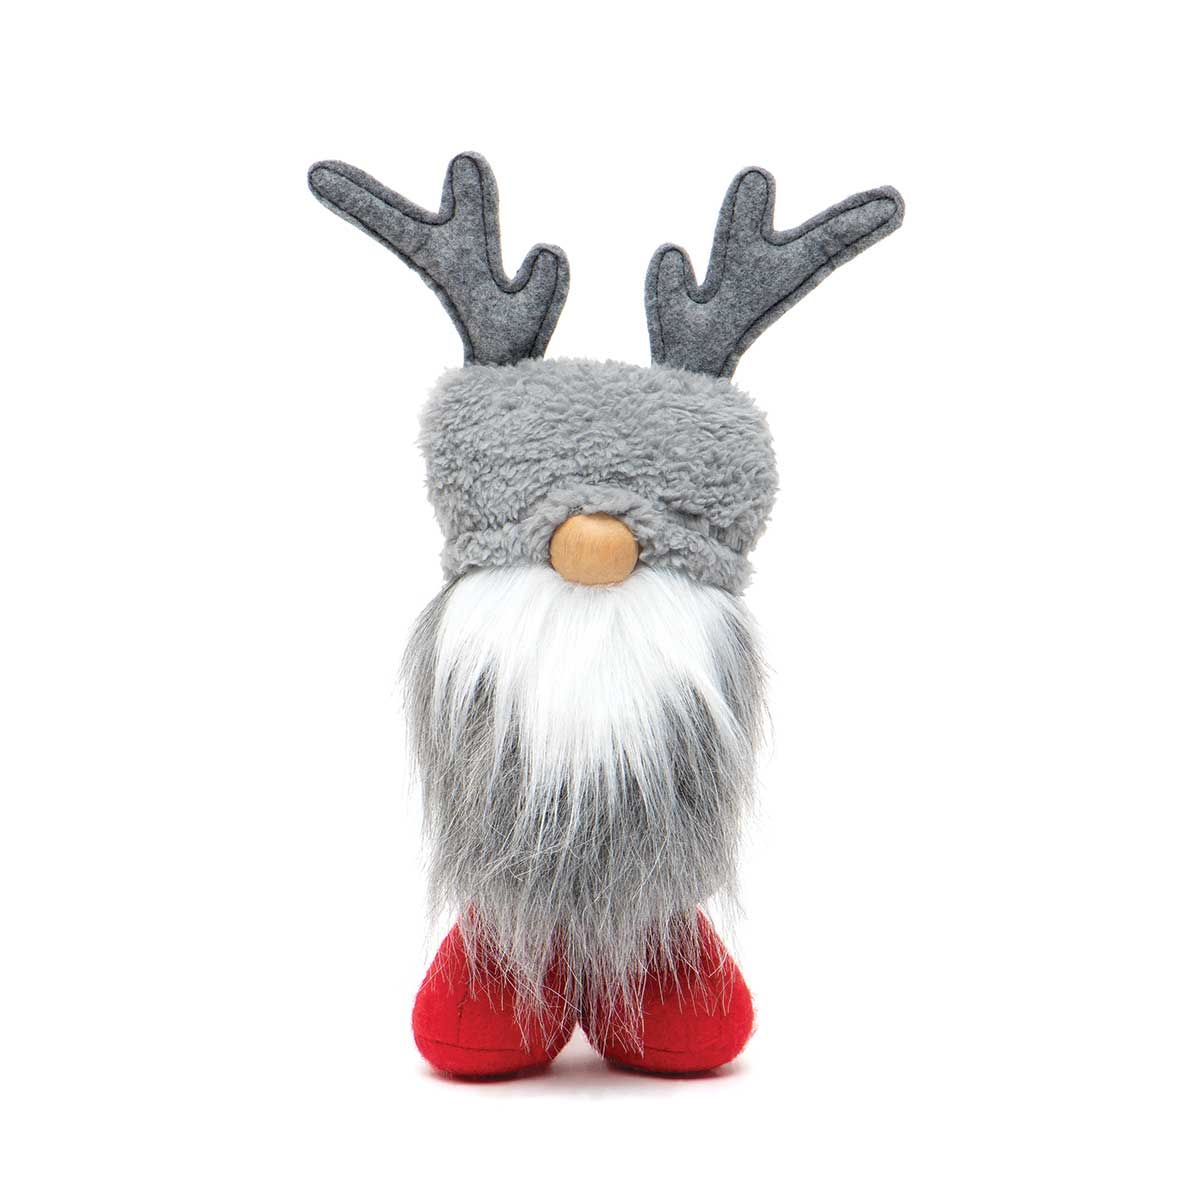 RUDI REINDEER GNOME GREY WITH WIRED ANTLERS, WOOD NOSE